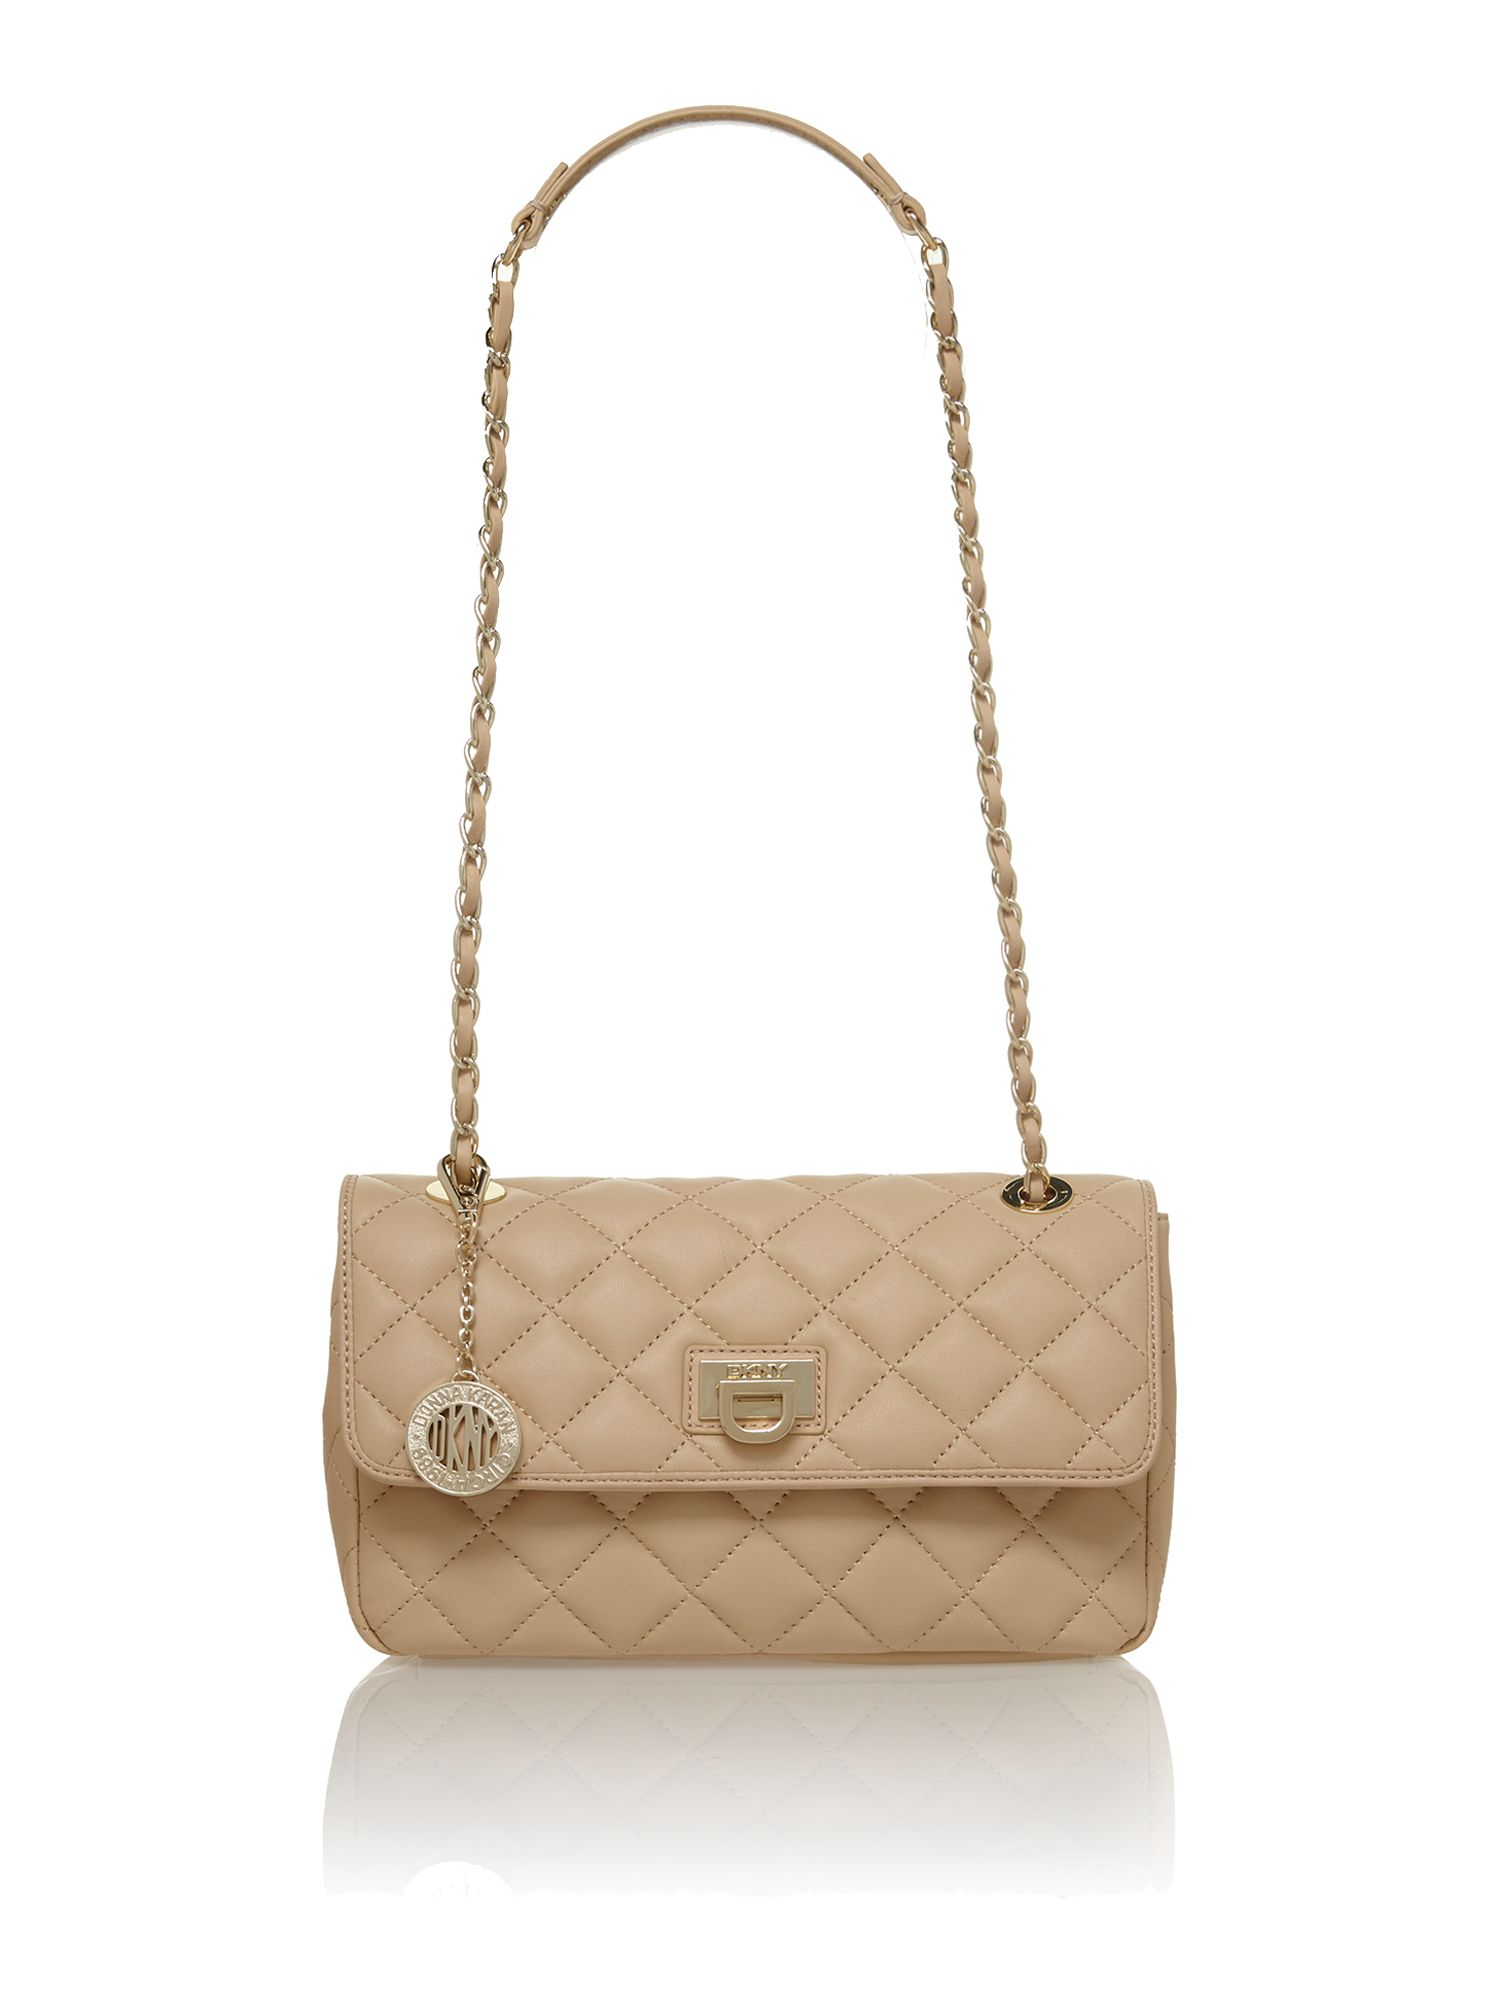 Dkny Quilted Nappa Neutral Shoulder Bag in Natural | Lyst